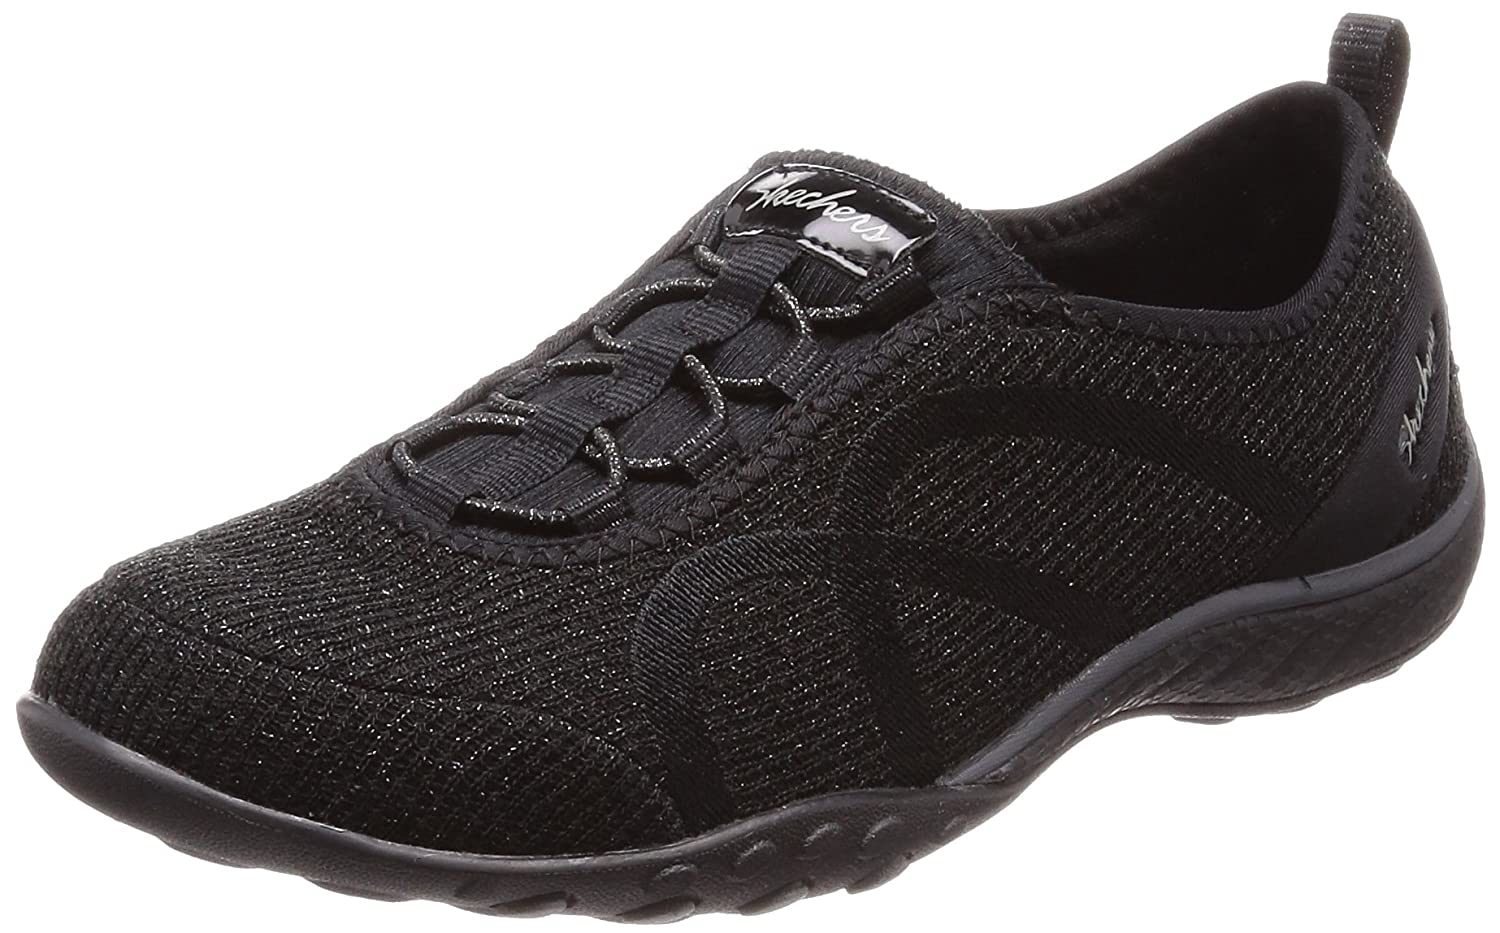 Skechers Relaxed Fit Breathe Easy Star search Womens Slip On Sneakers B07932MXHJ 10 B(M) US|Black